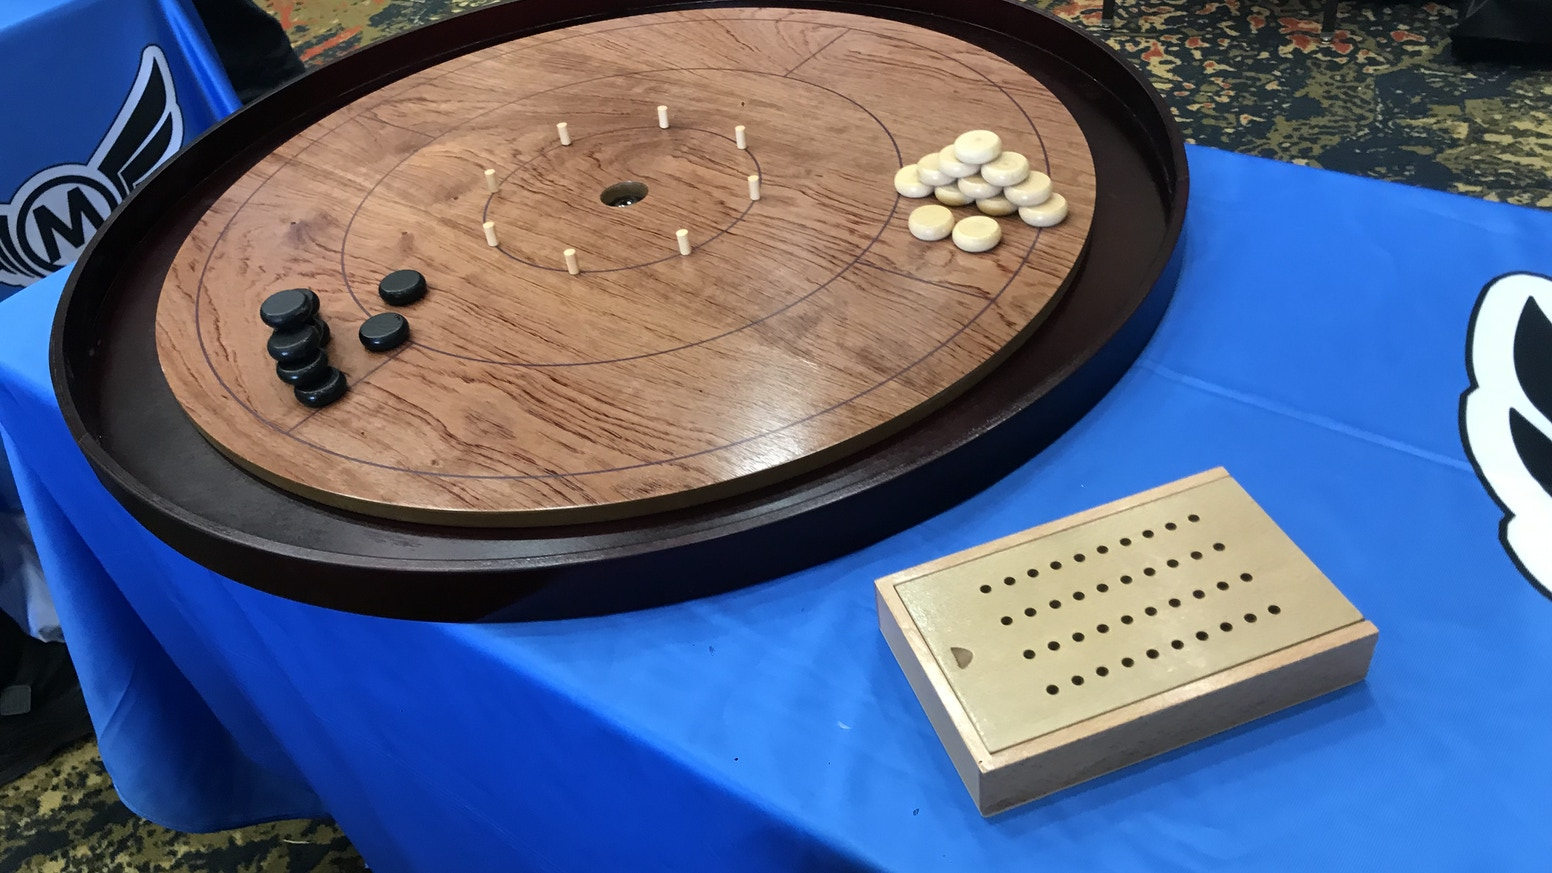 Our 6th Edition of Crokinole for 2019 will feature our newest box design and most of the features of our very popular 2018 version!